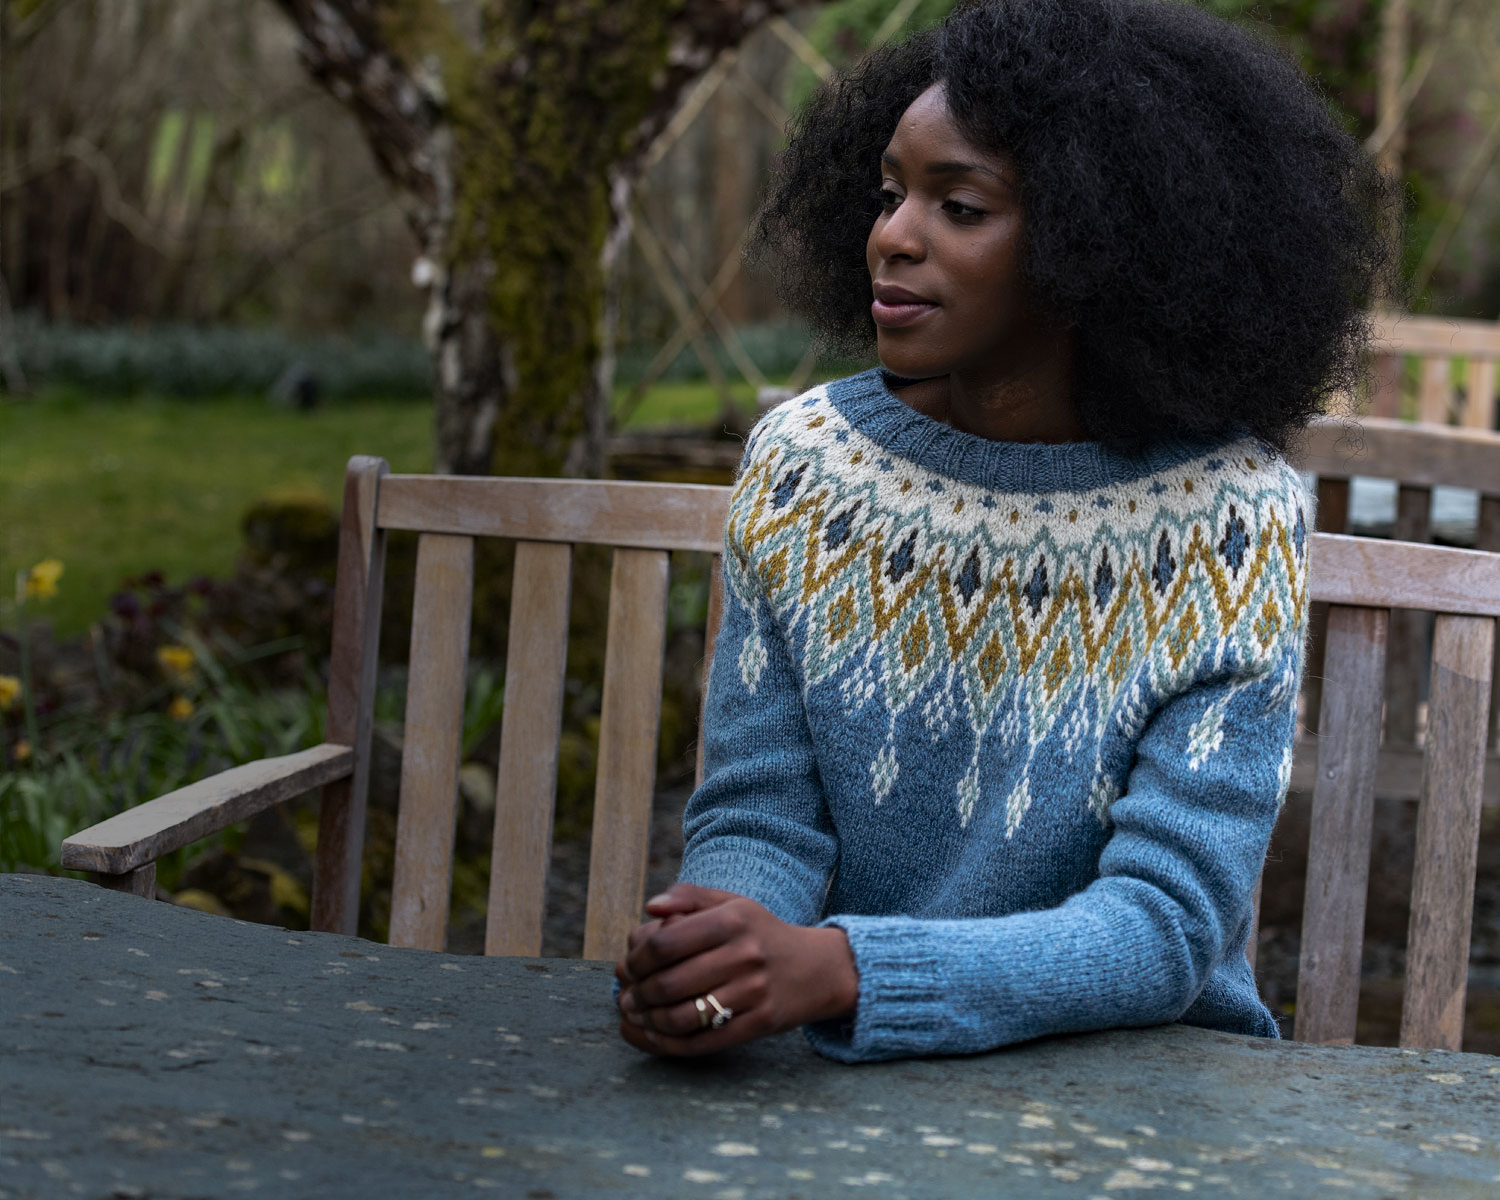 Our model, Joy, is wearing a Seacross colourwork sweater. It is mainly pale blue with pops of cream, yellow, turquoise and brown in the yoke.